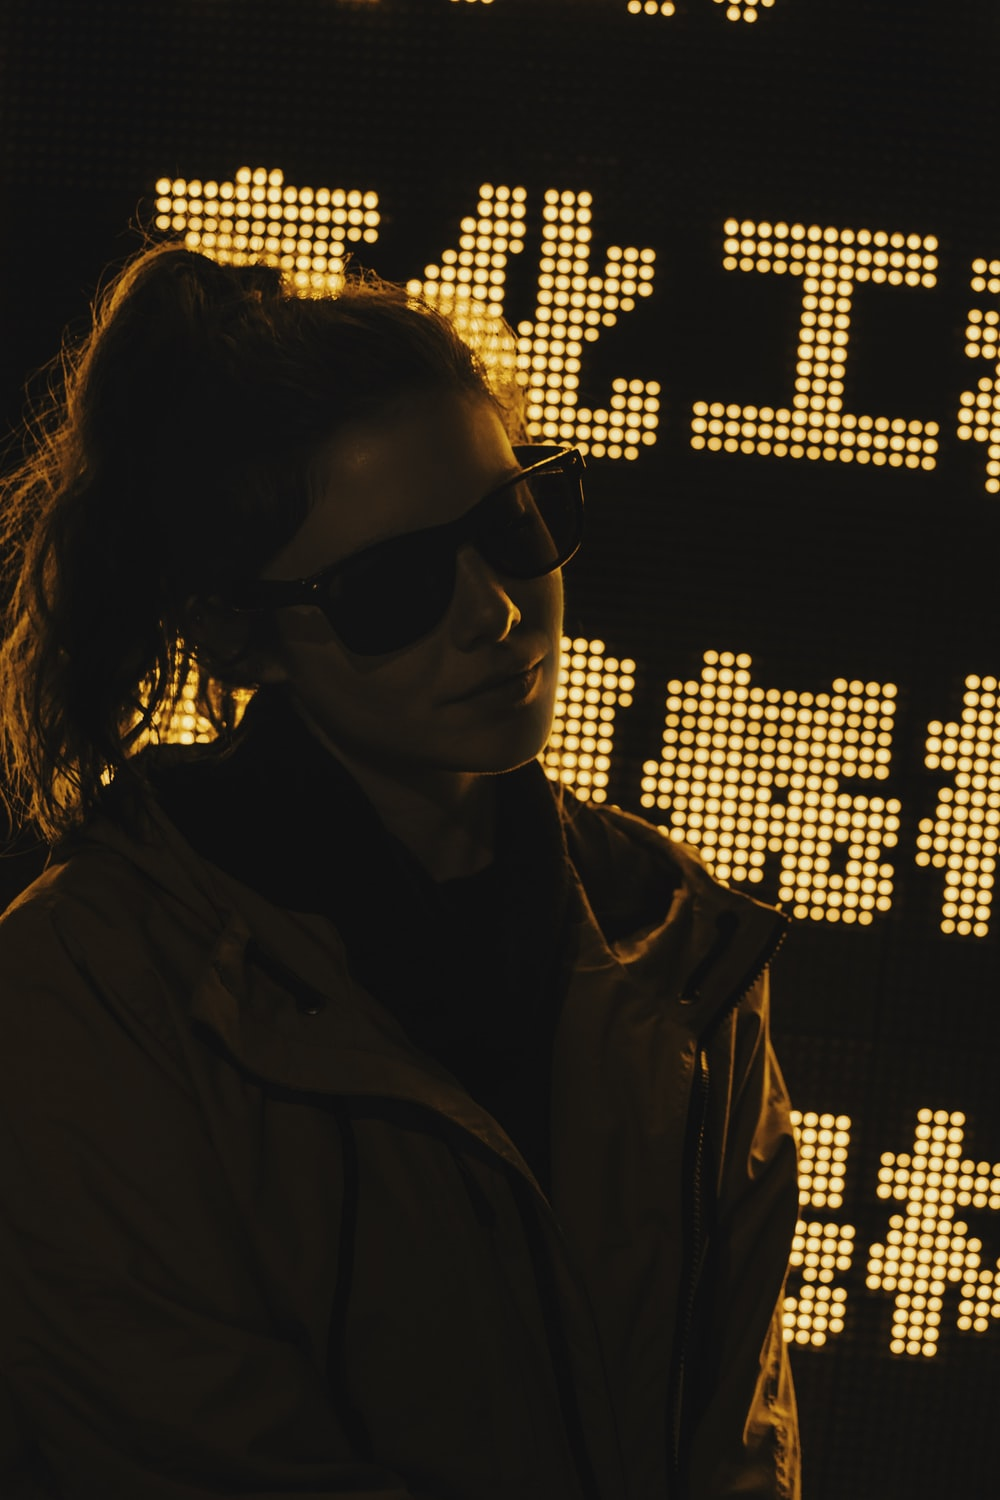 pony-tailed hair of woman in brown jacket wearing black sunglasses